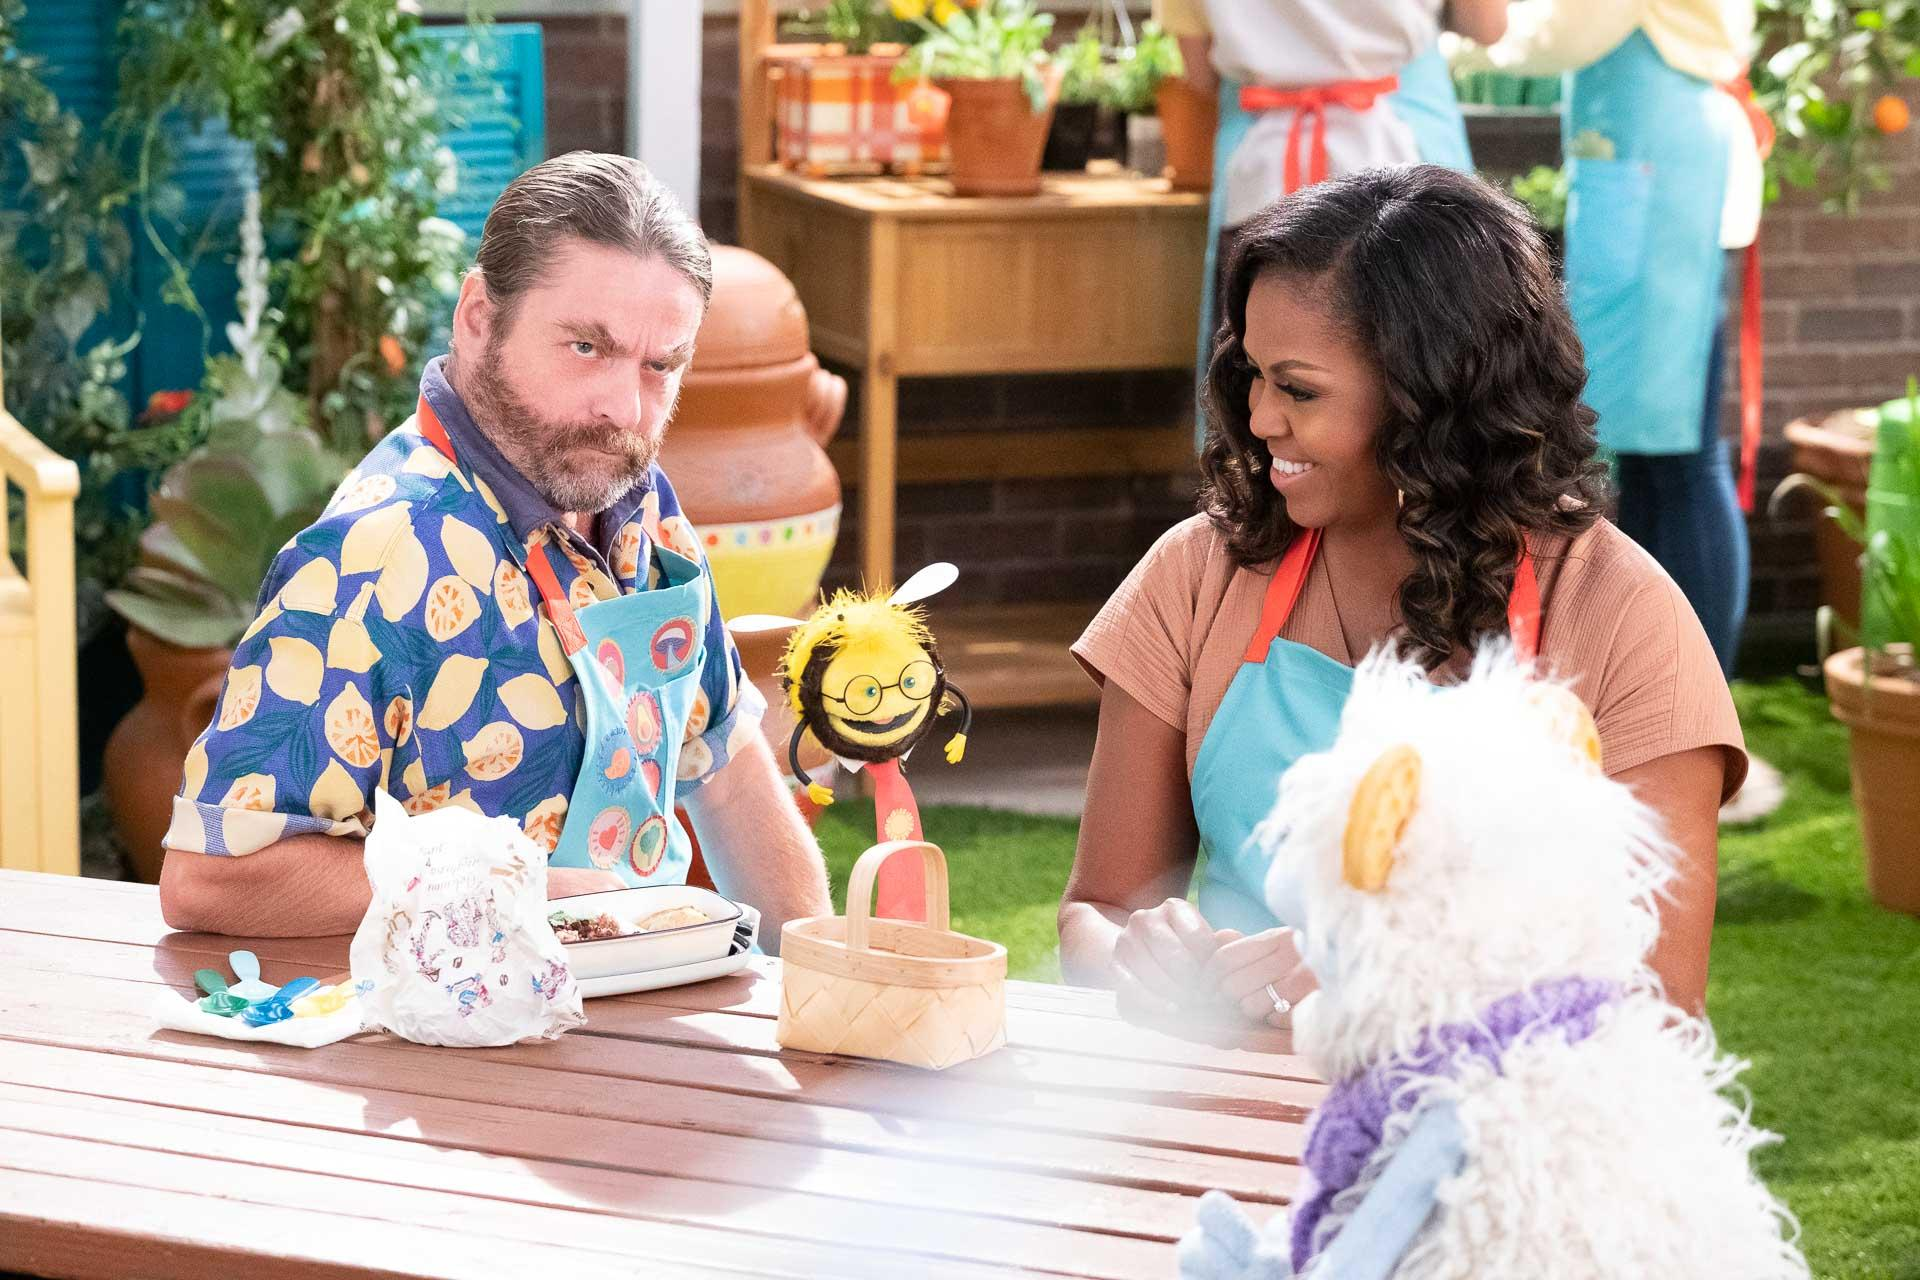 ZACH GALIFIANAKIS as GUS, BUSY, MICHELLE OBAMA, and WAFFLES